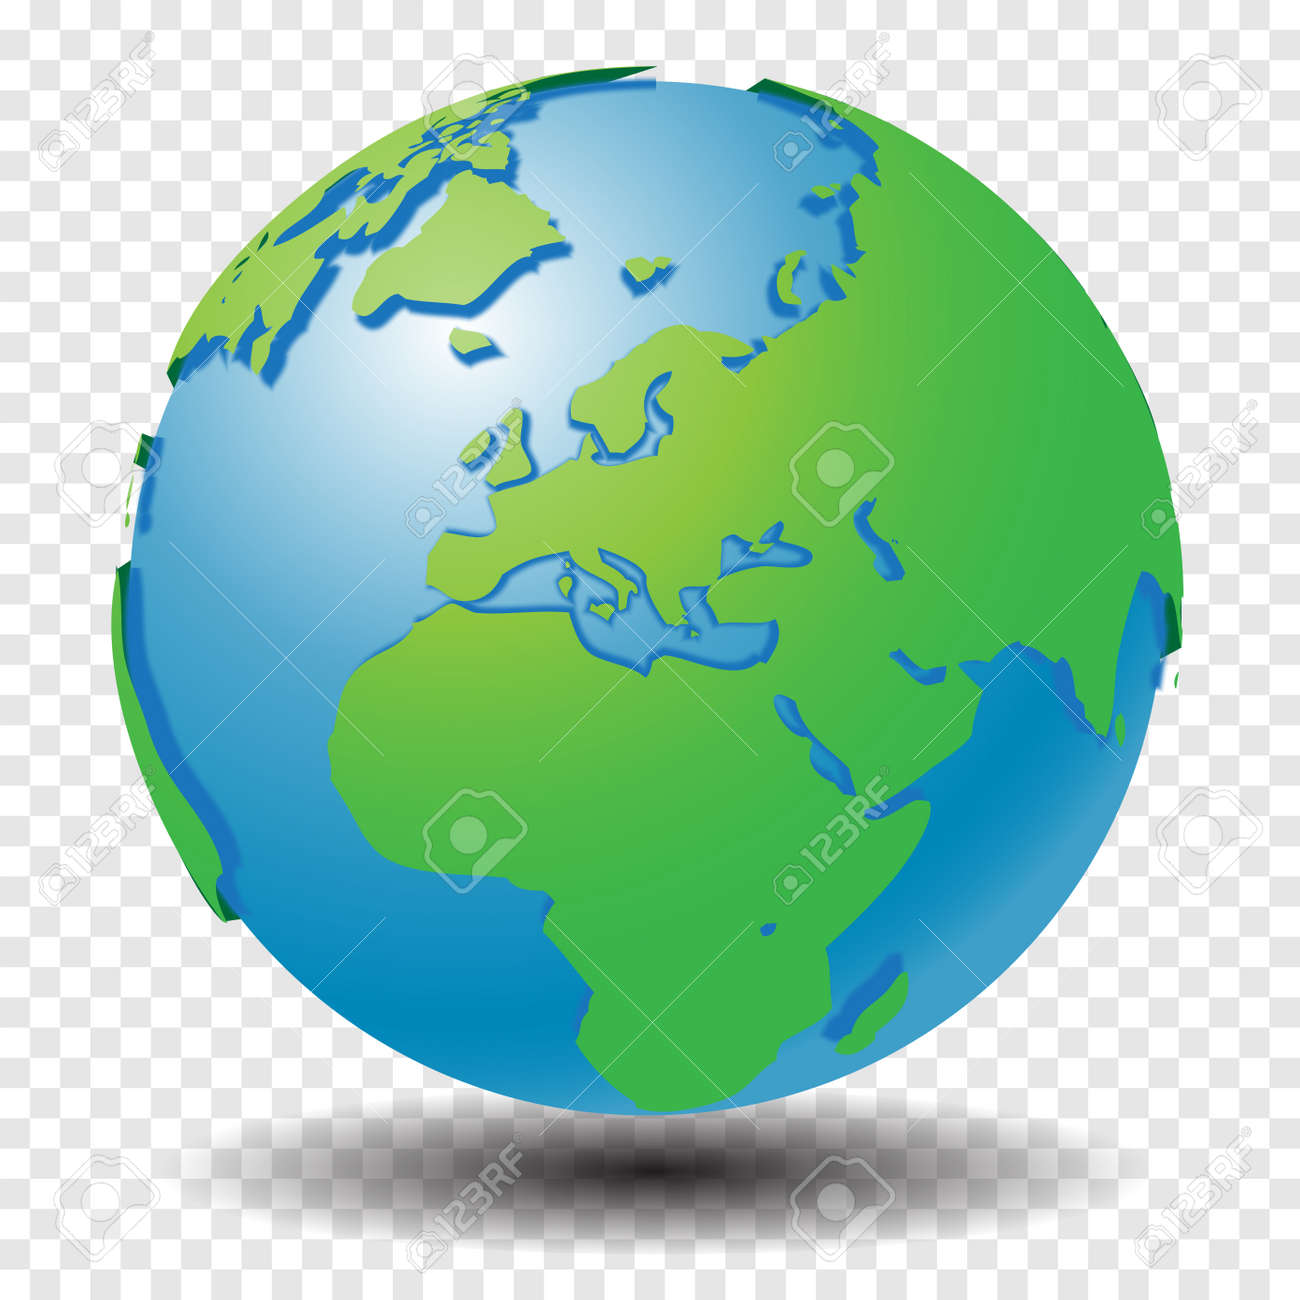 Globe With World Map Show Middle East And Europe Region With